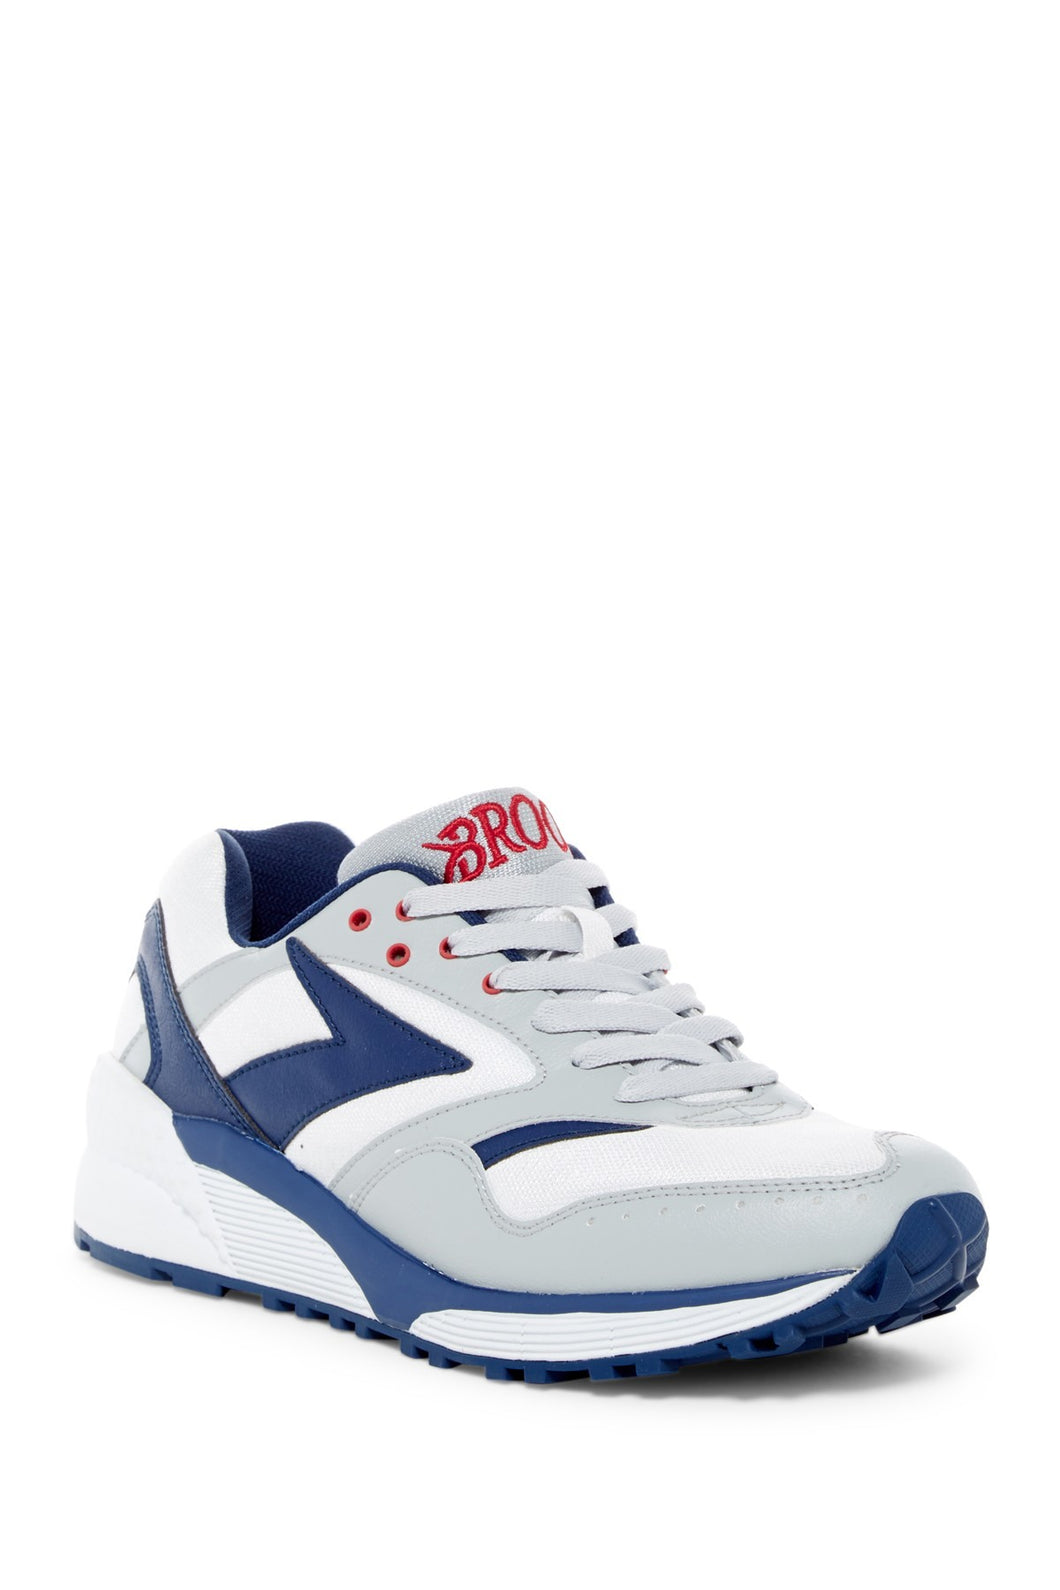 Men's Brooks Mojo. Navy and Red